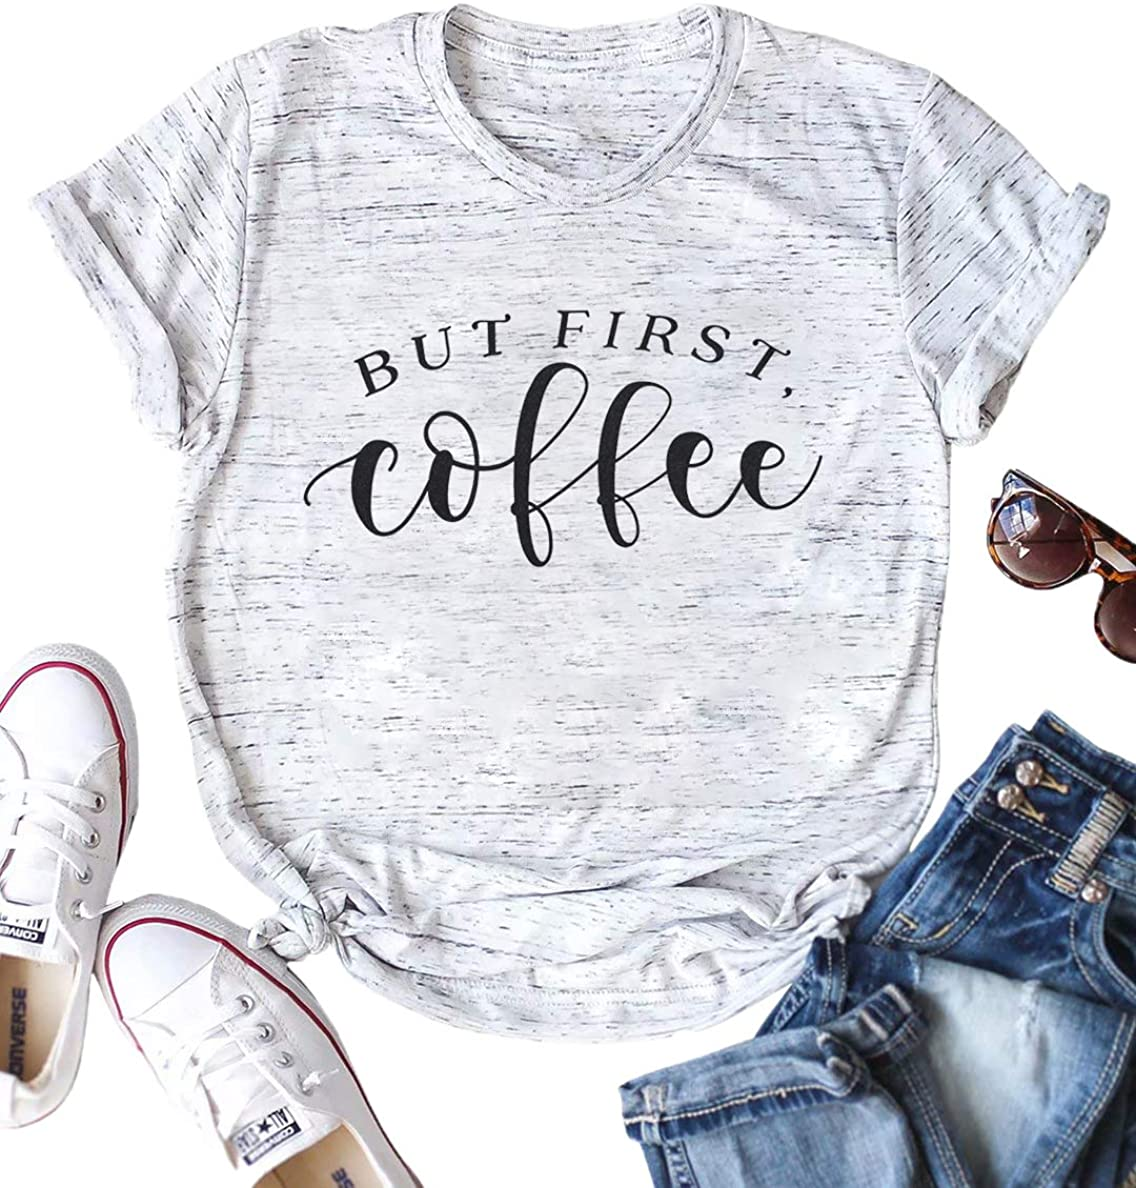 But First Coffee Shirt Women Funny Letter Print Tee Shirt Casual Short Sleeve Mom Gift Tee Top